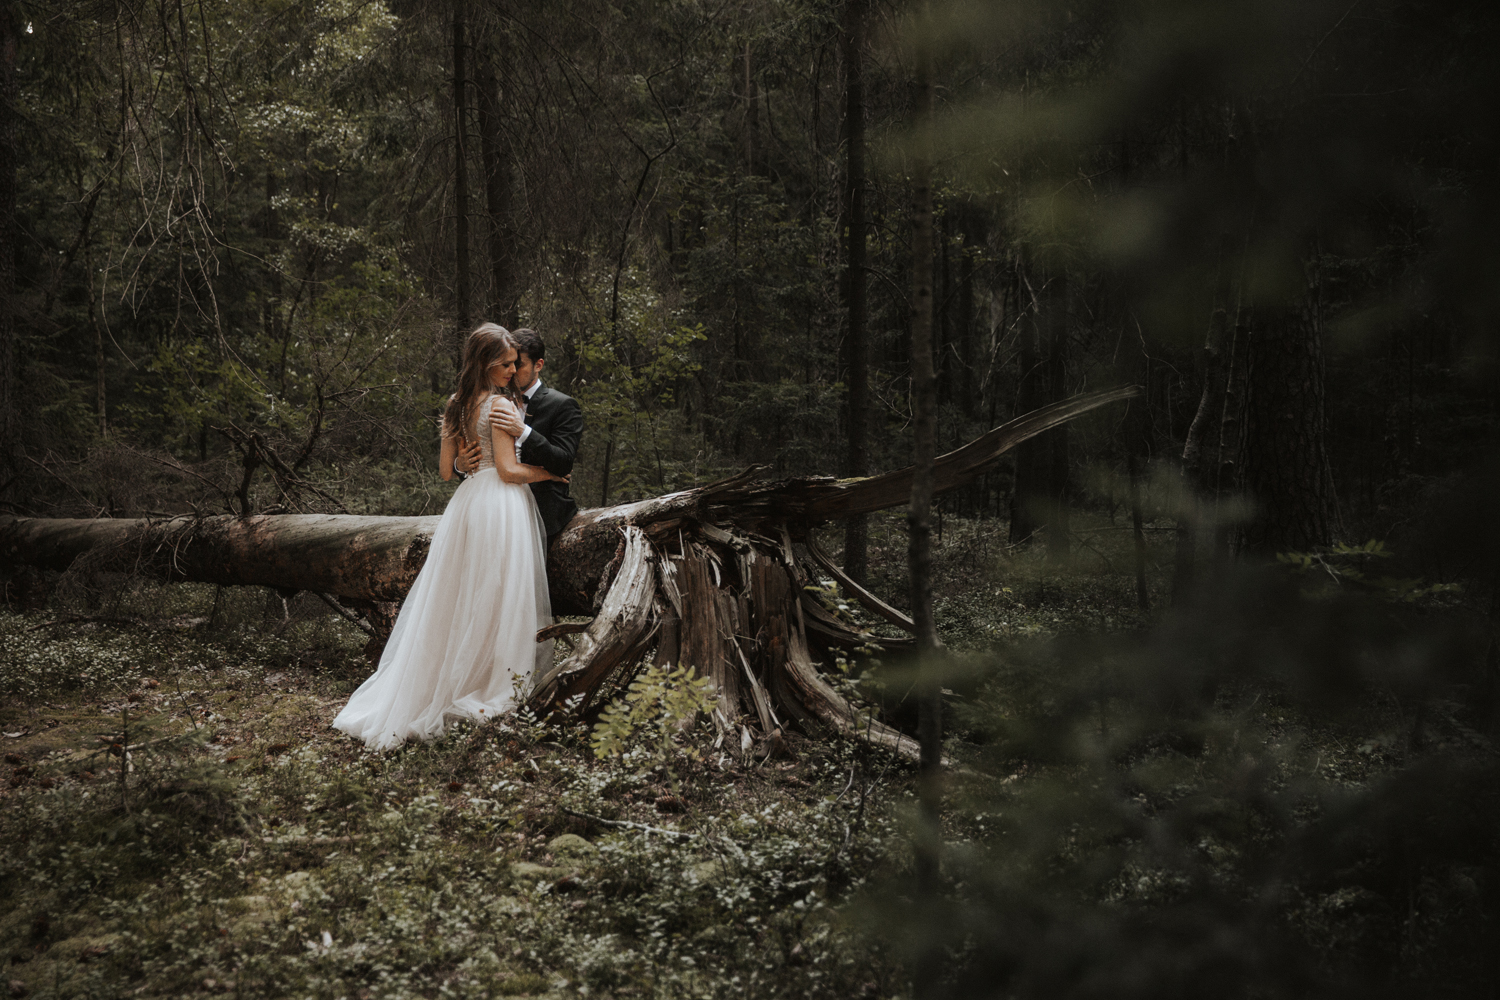 weddingphotograher_klaudia_rafal_nationalpark_498.jpg